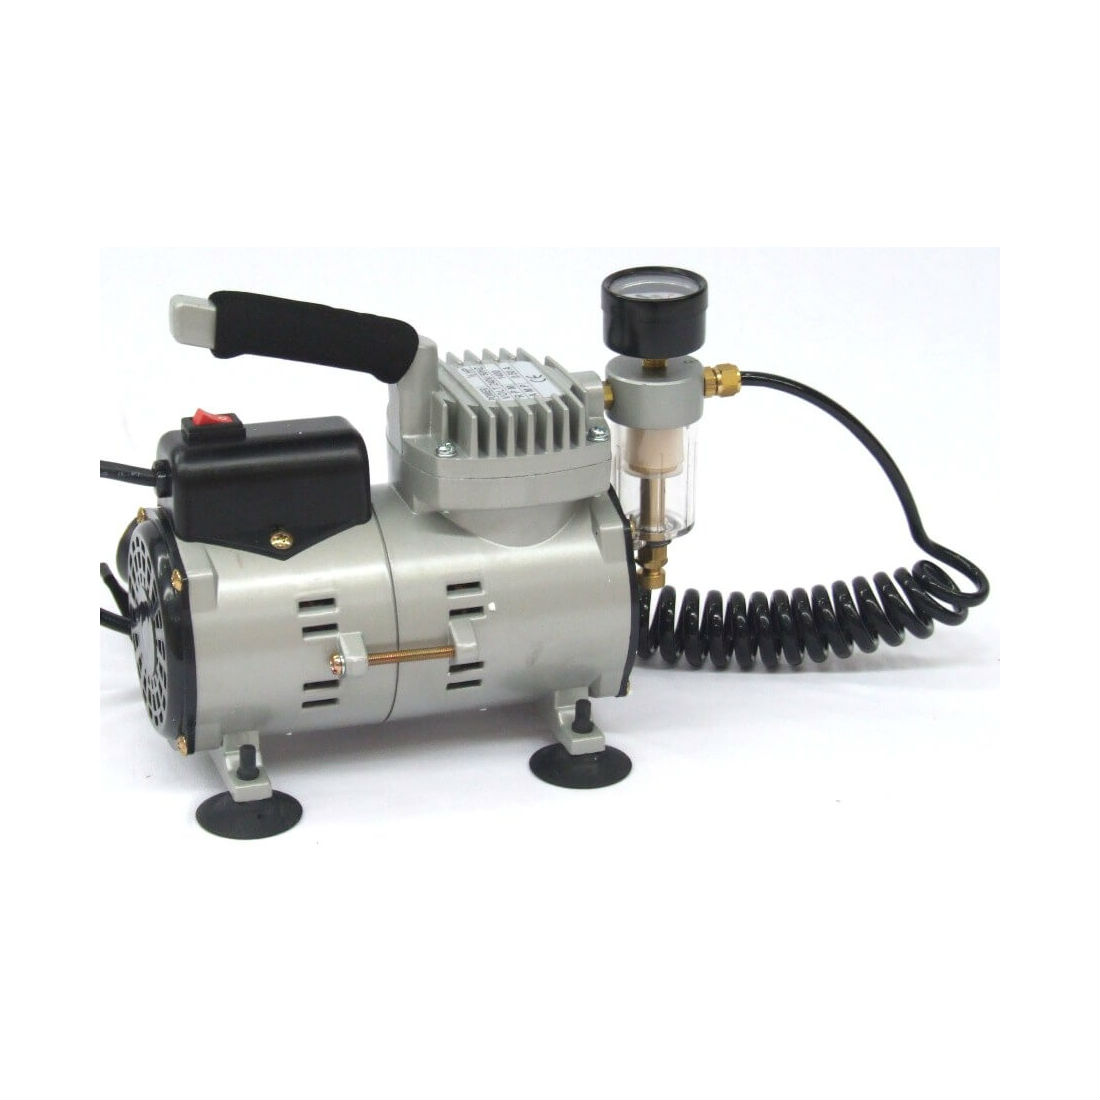 BALL PUMP LOTTO AIR COMPRESSOR 69028